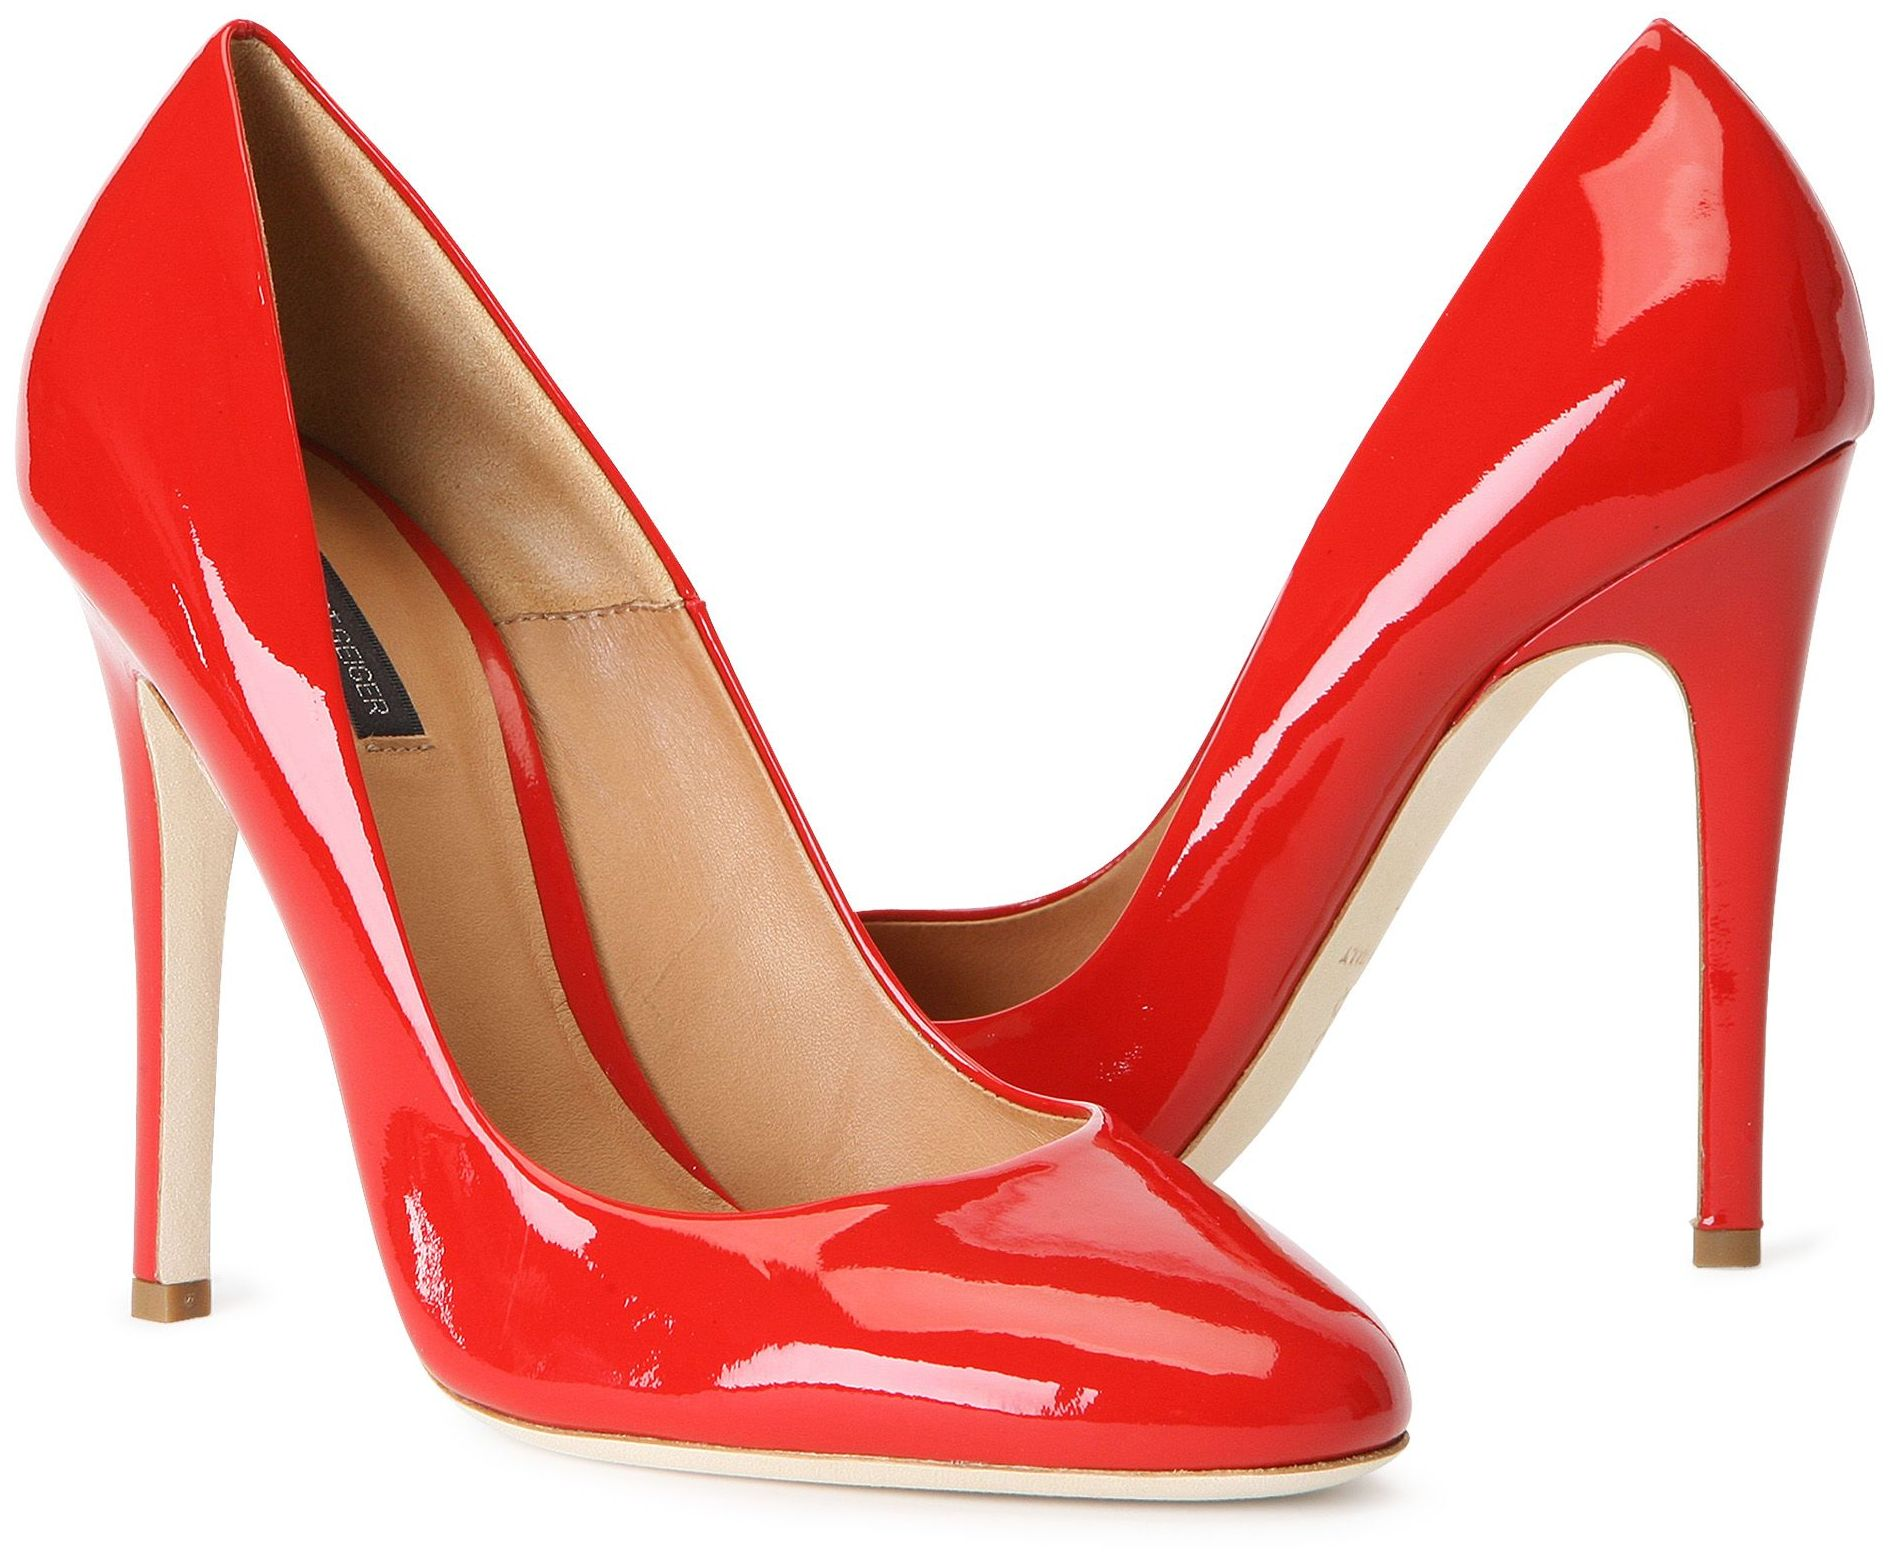 the high heel Comfortable heels can seem like a bit of an oxymoron—even the patroness saint of pumps, sarah jessica parker, admitted that no heel will last you for hours on end but has that ever stopped .